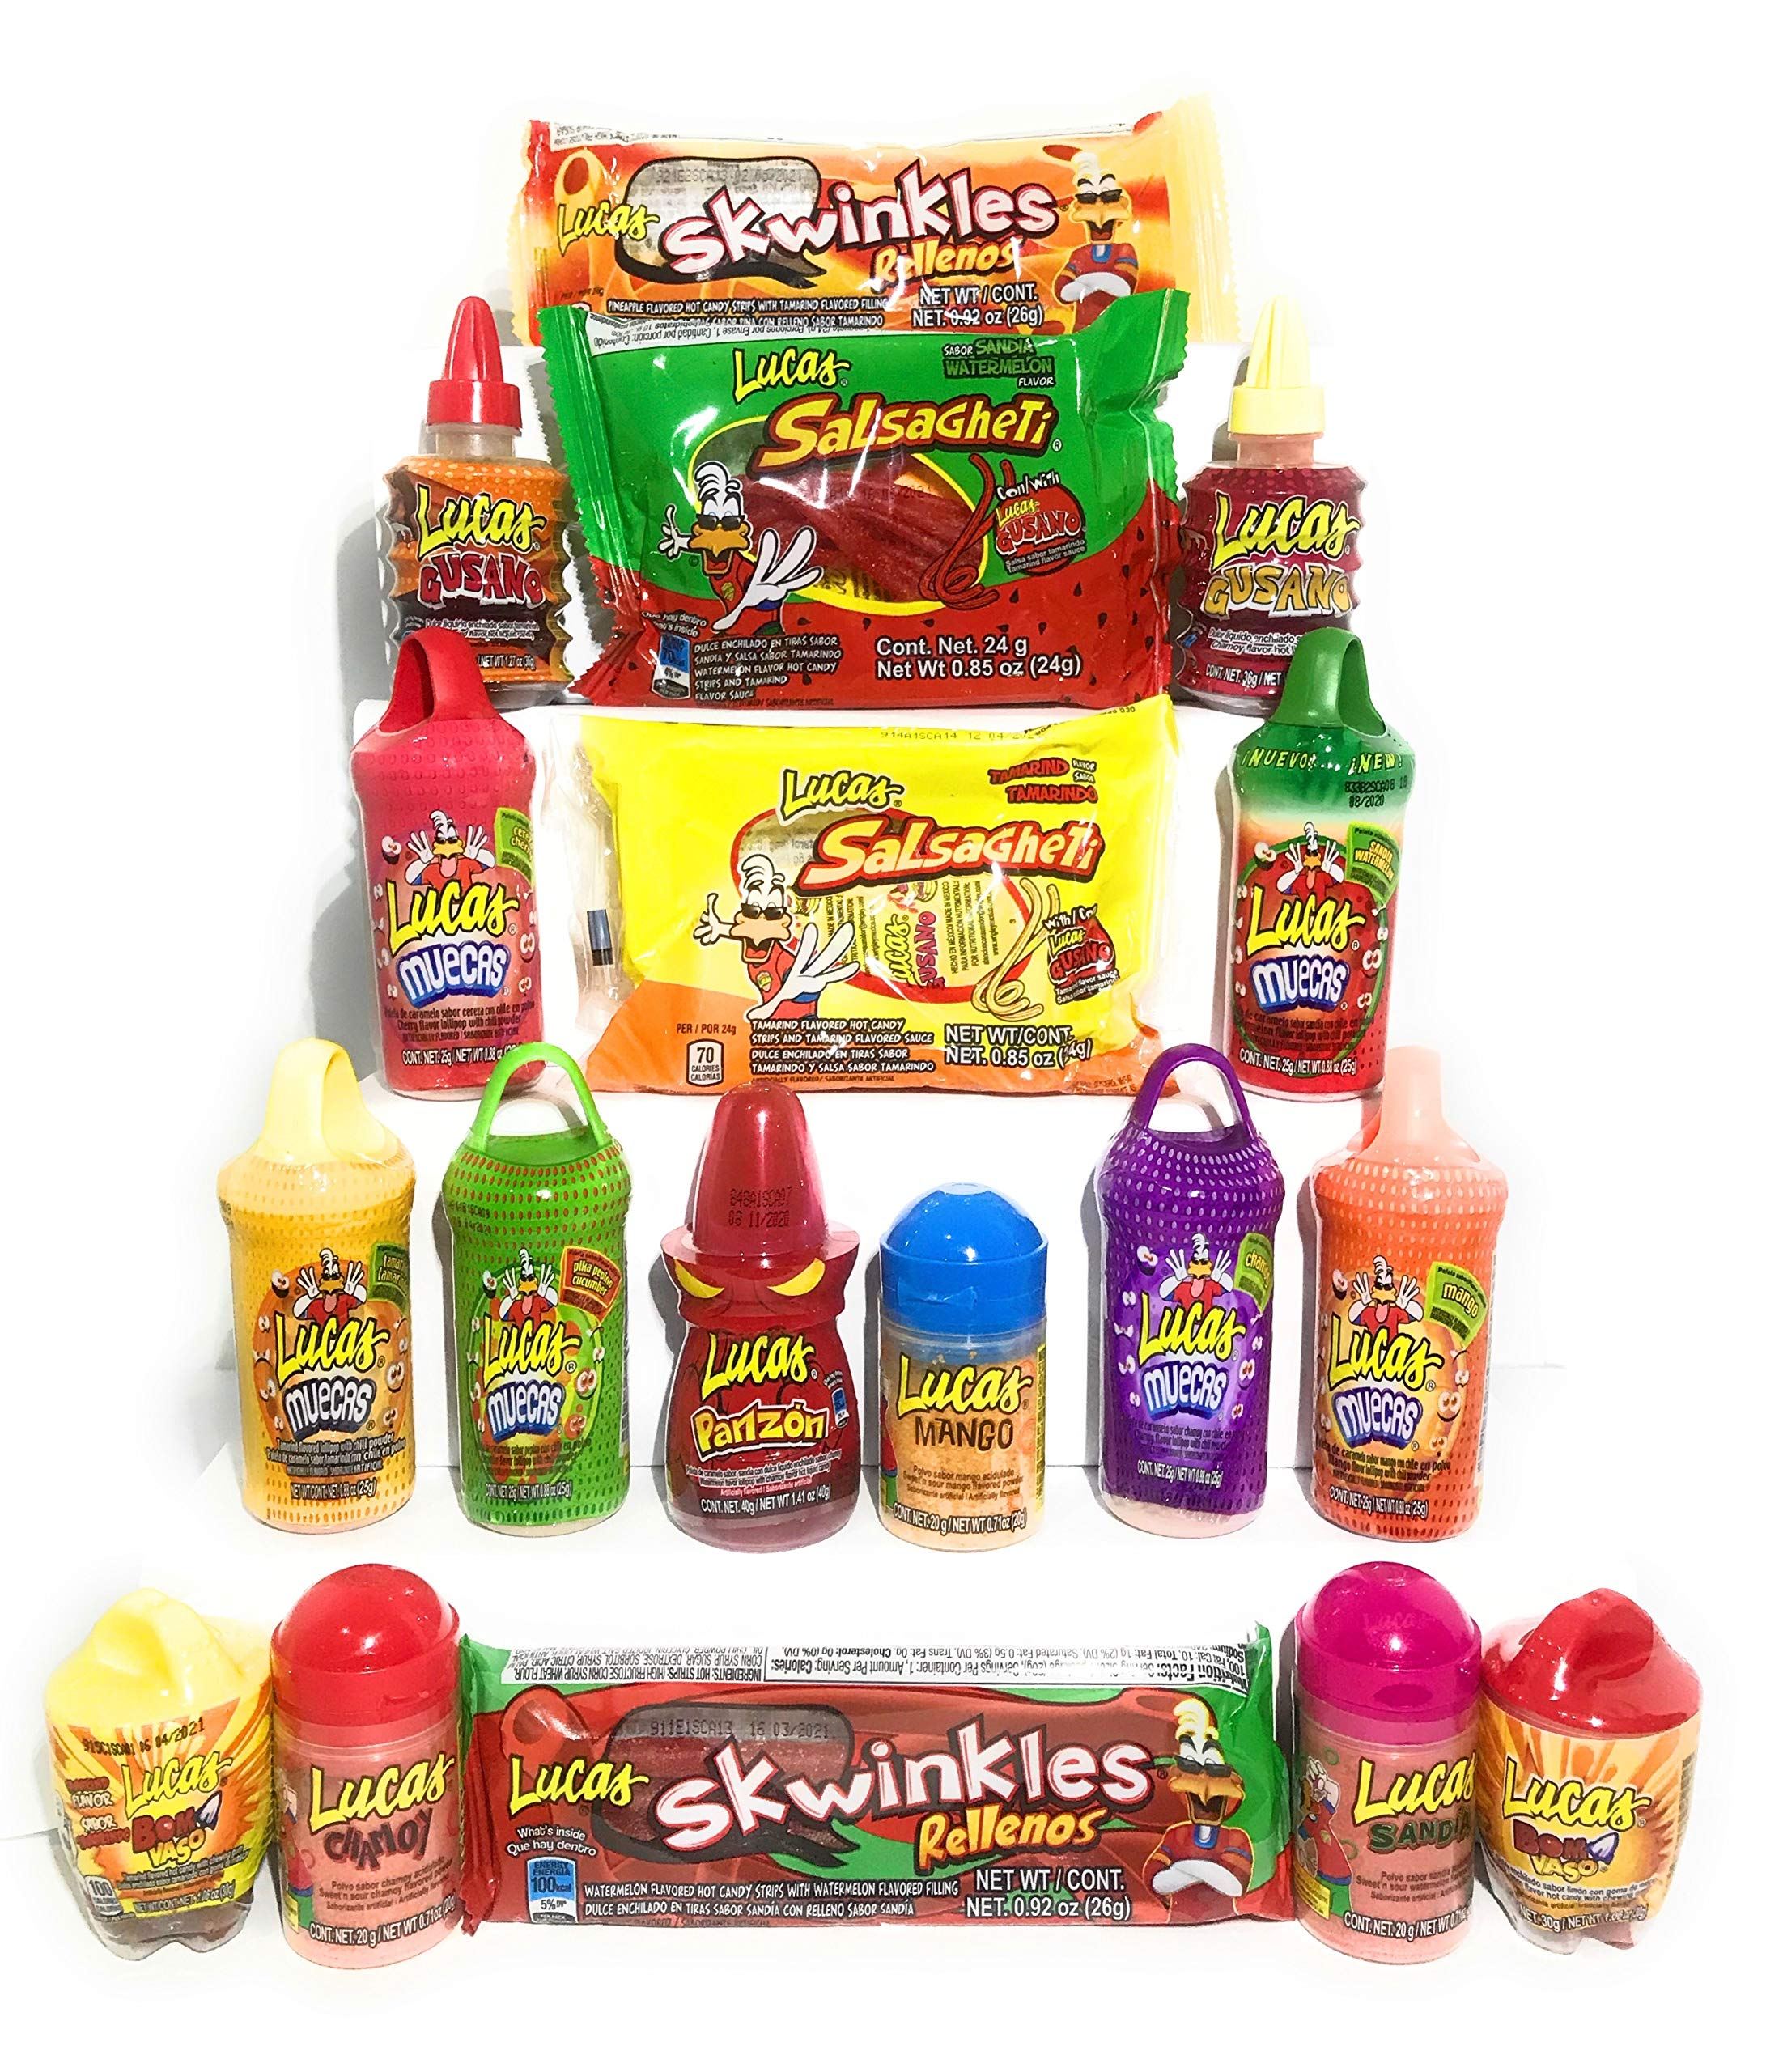 Lucas Ultimate Candy Assortment Premium Mexican Candy (18 Count) Sweet, Sour & Spicy Candy All In One Bundle Dulces Mexicanos Makes Perfect Gift For Everyone Variety Snack Pack